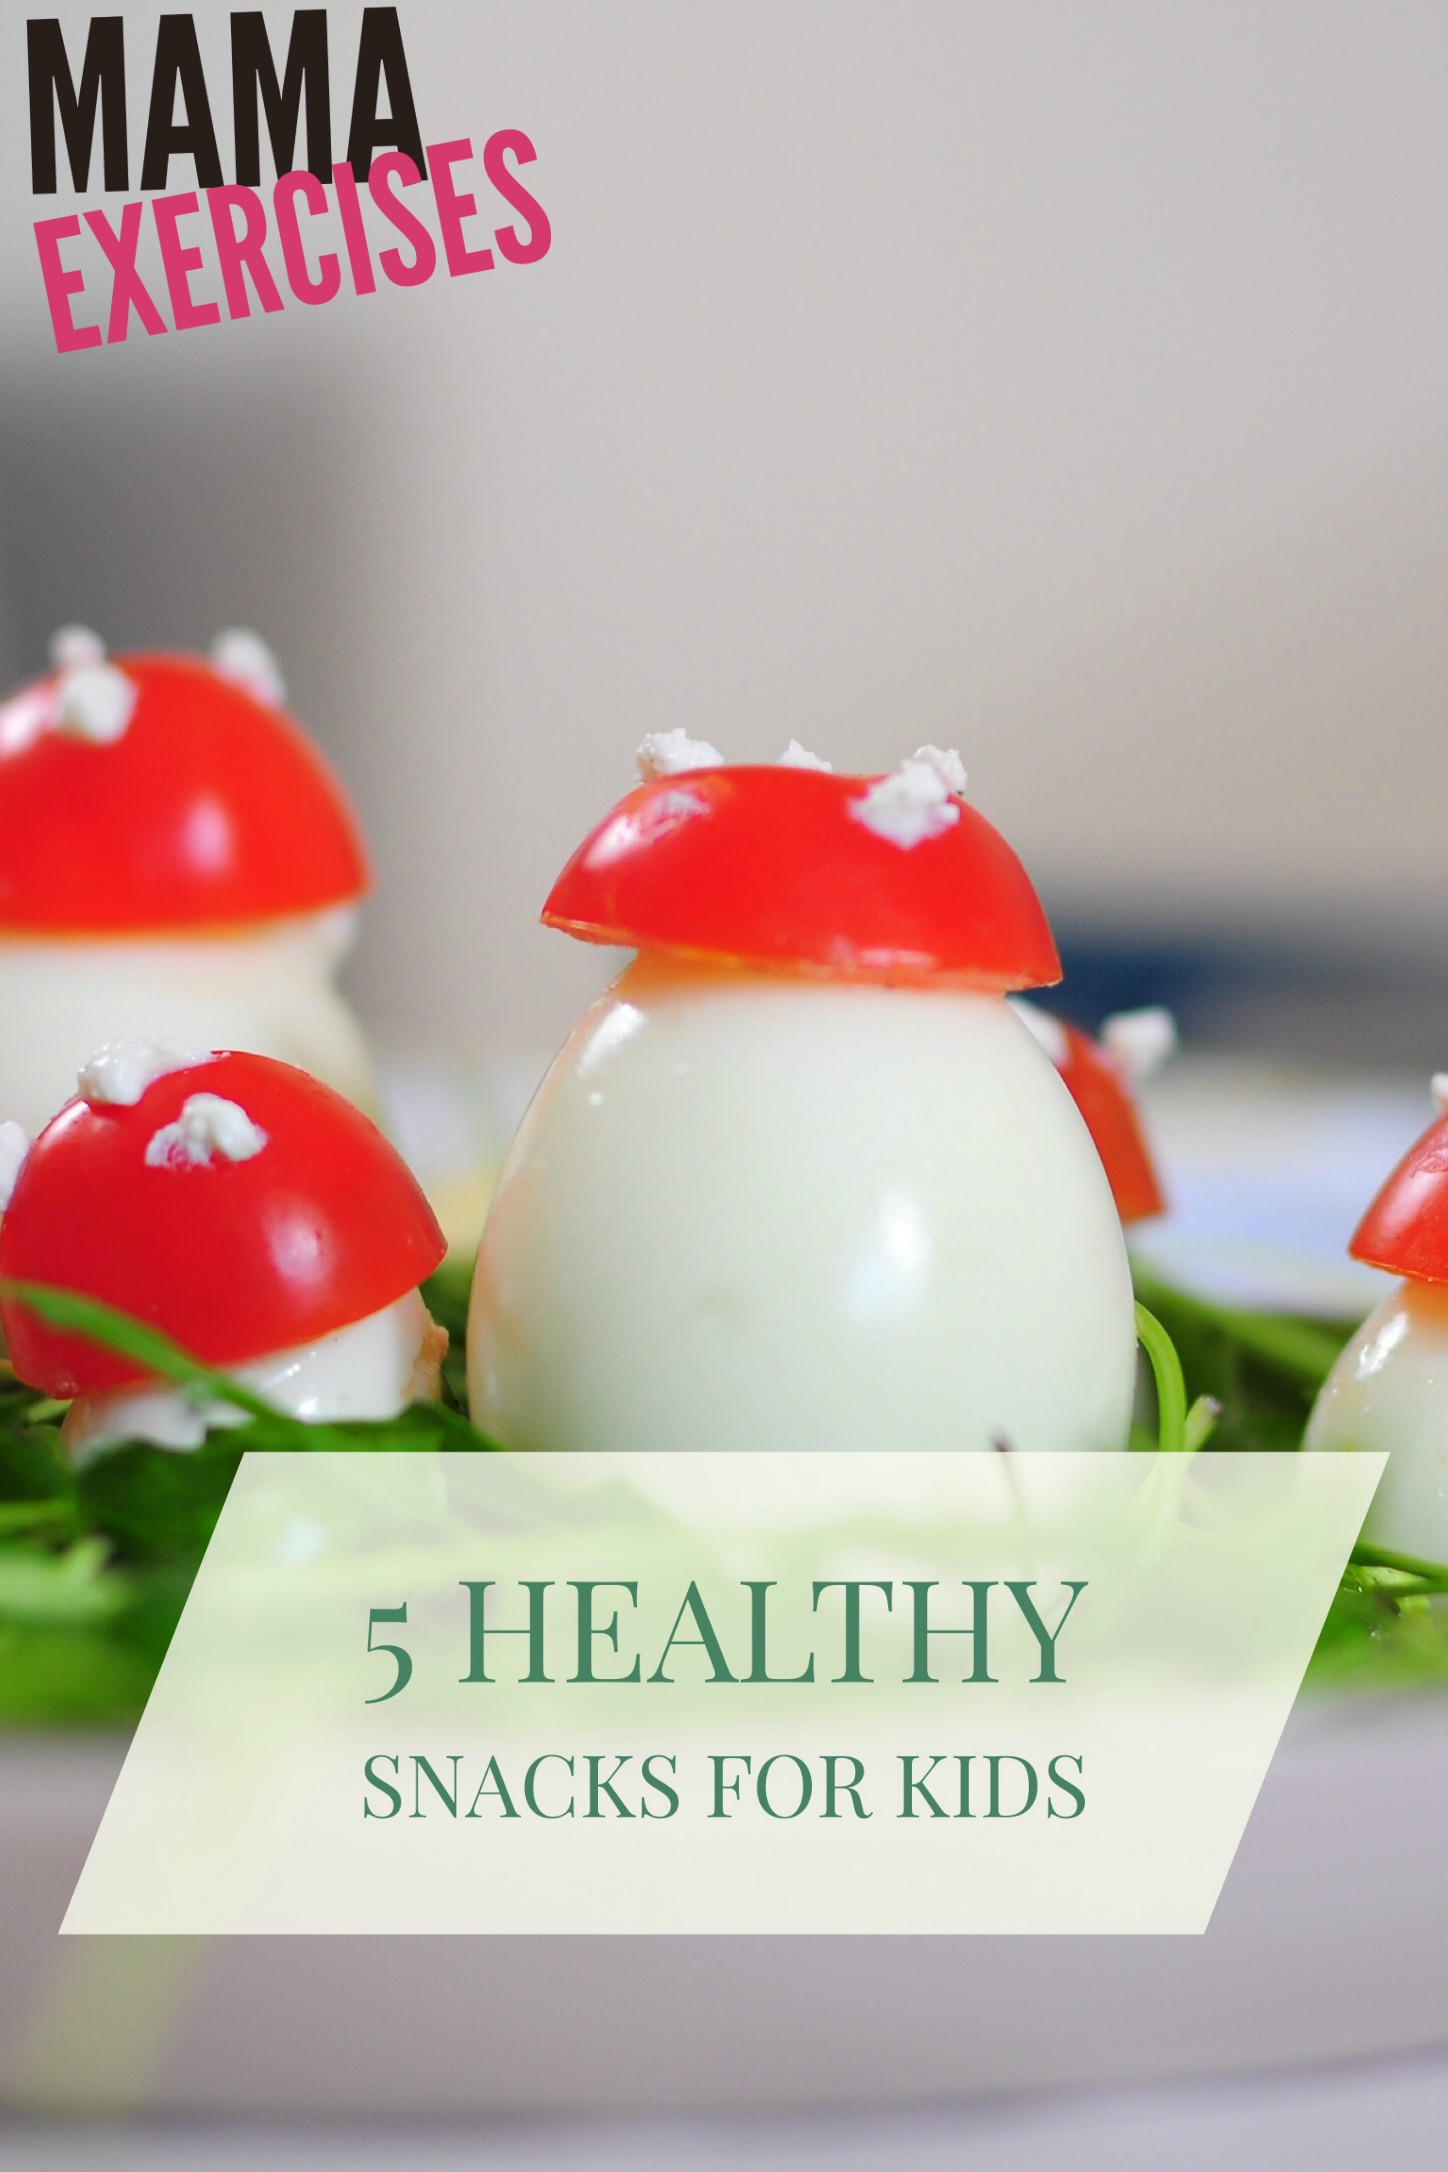 5 Delicious and Nutritious Healthy Snacks for Kids - MamaExercises.com